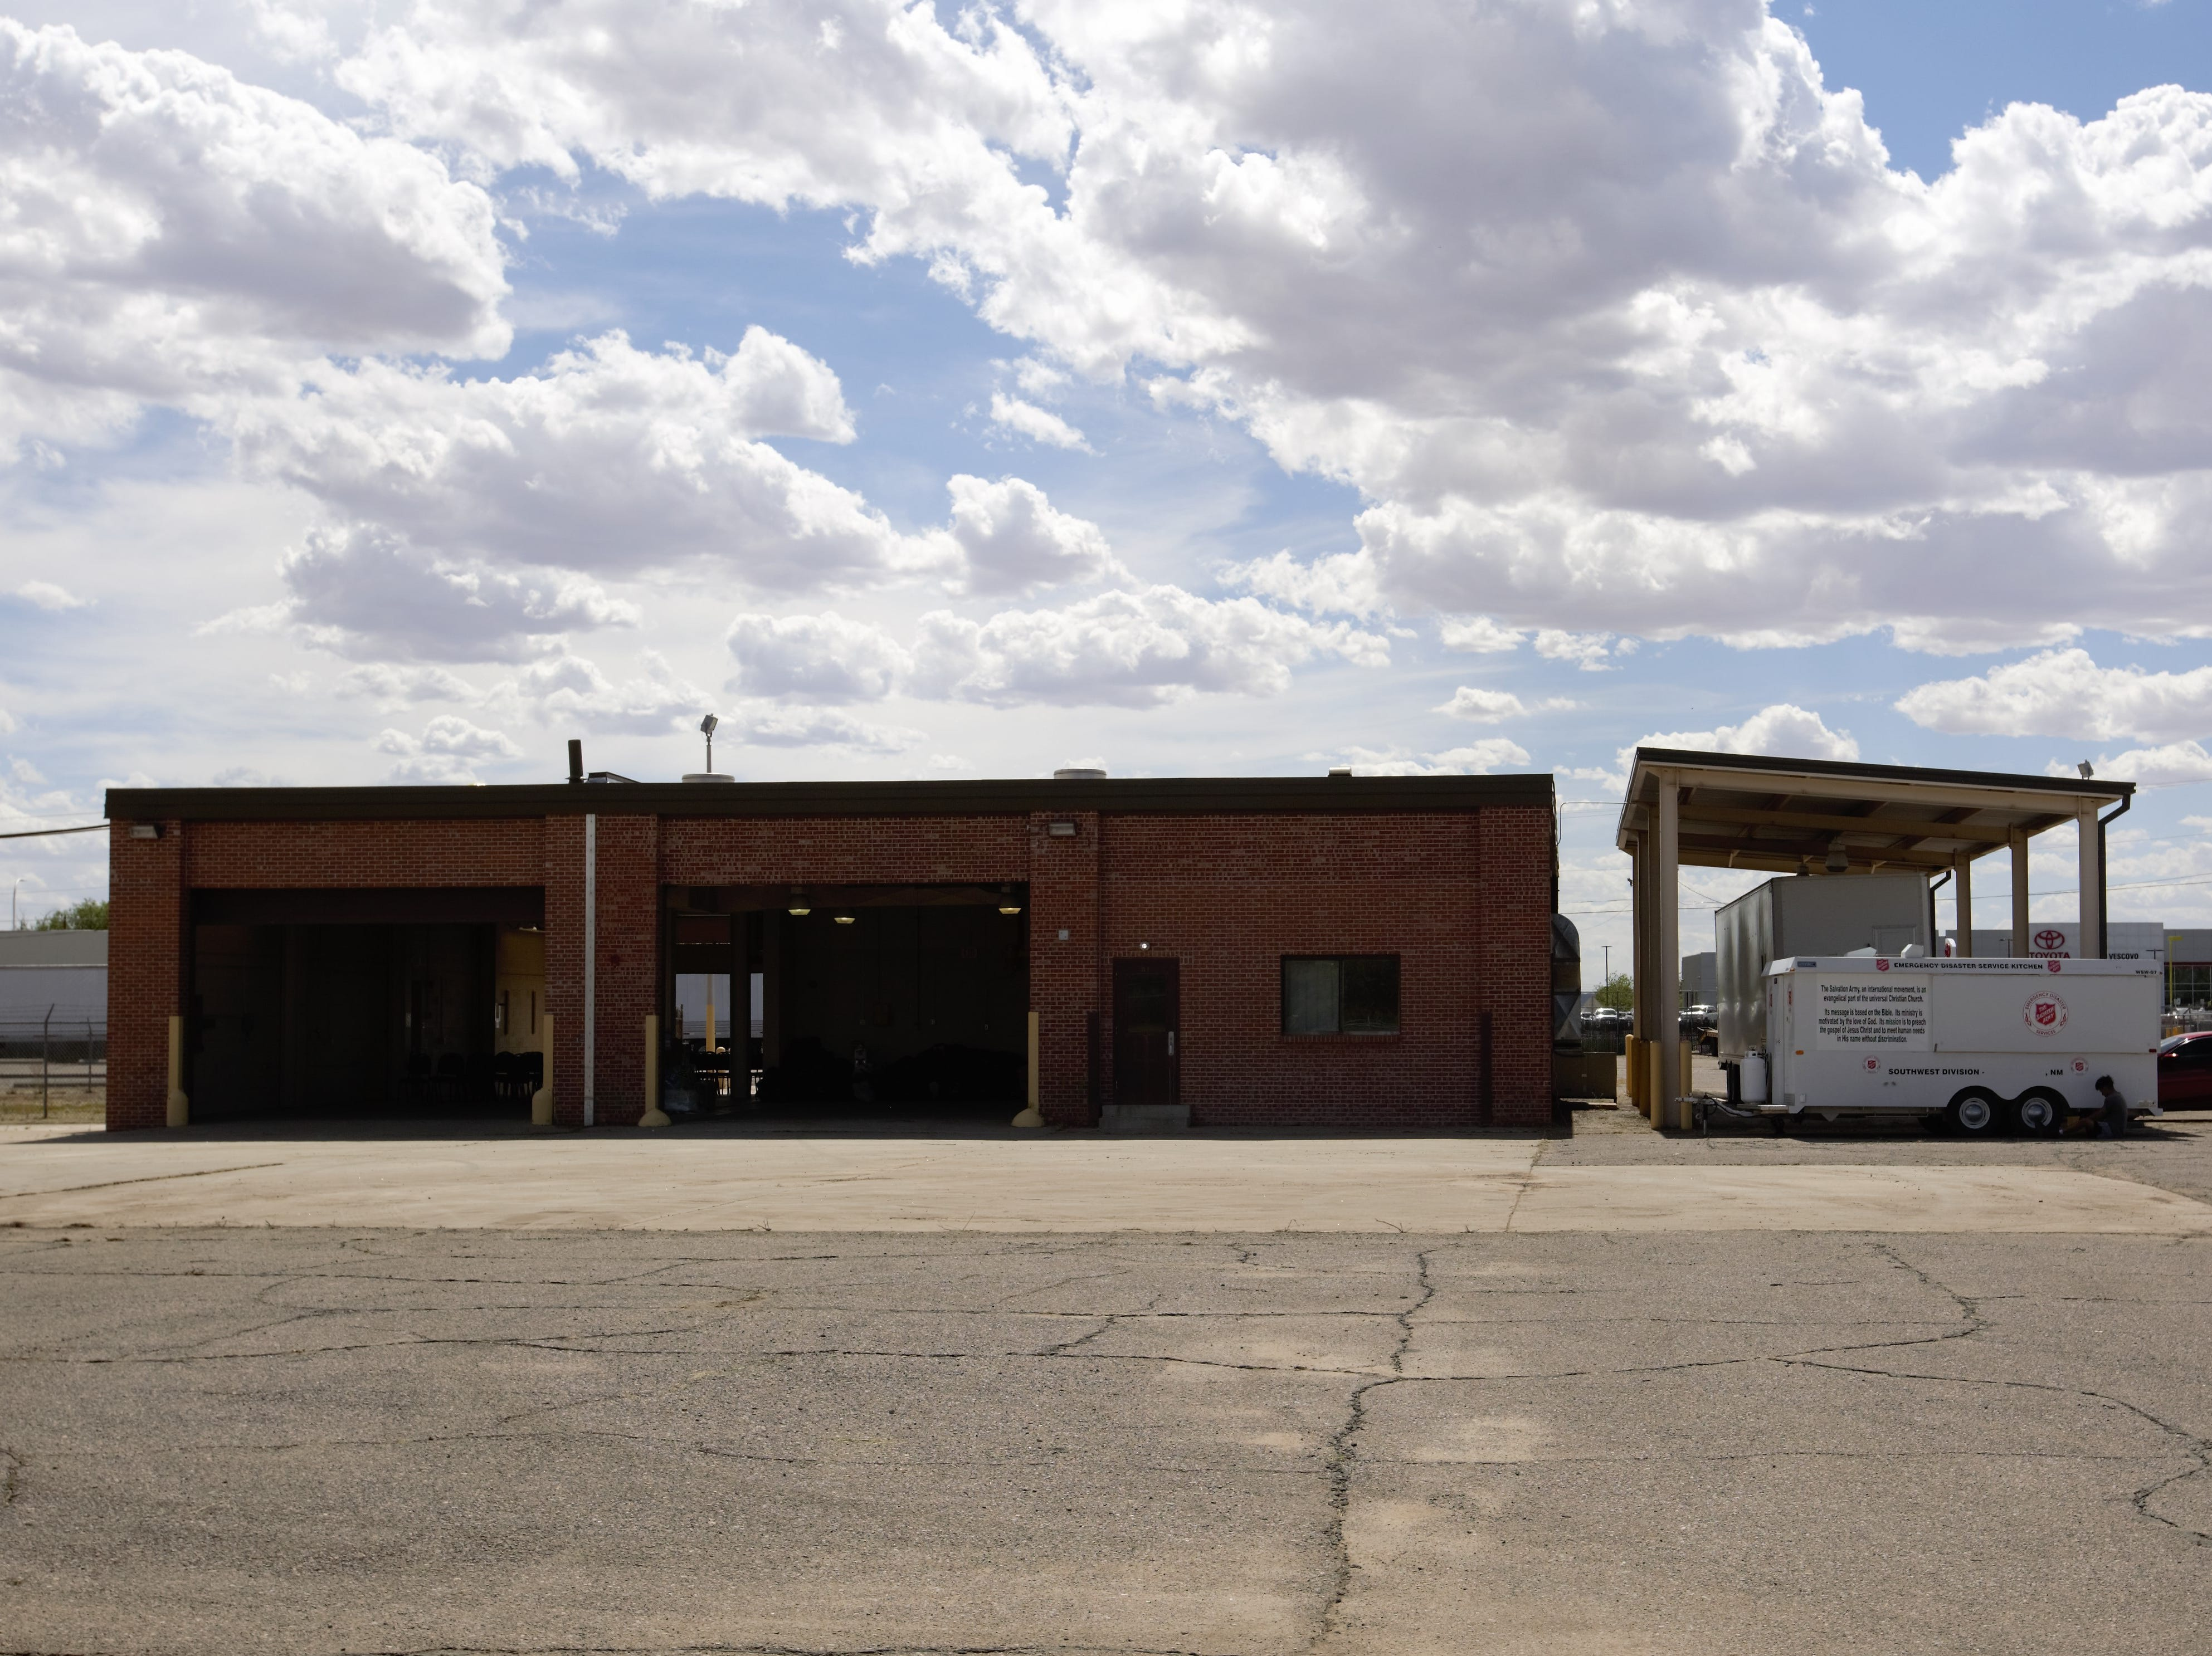 Initial intake building for asylum applicants at the former U.S. Army Reserve Center at 1300 W. Brown Road in Las Cruces. Friday, April 26, 2019.